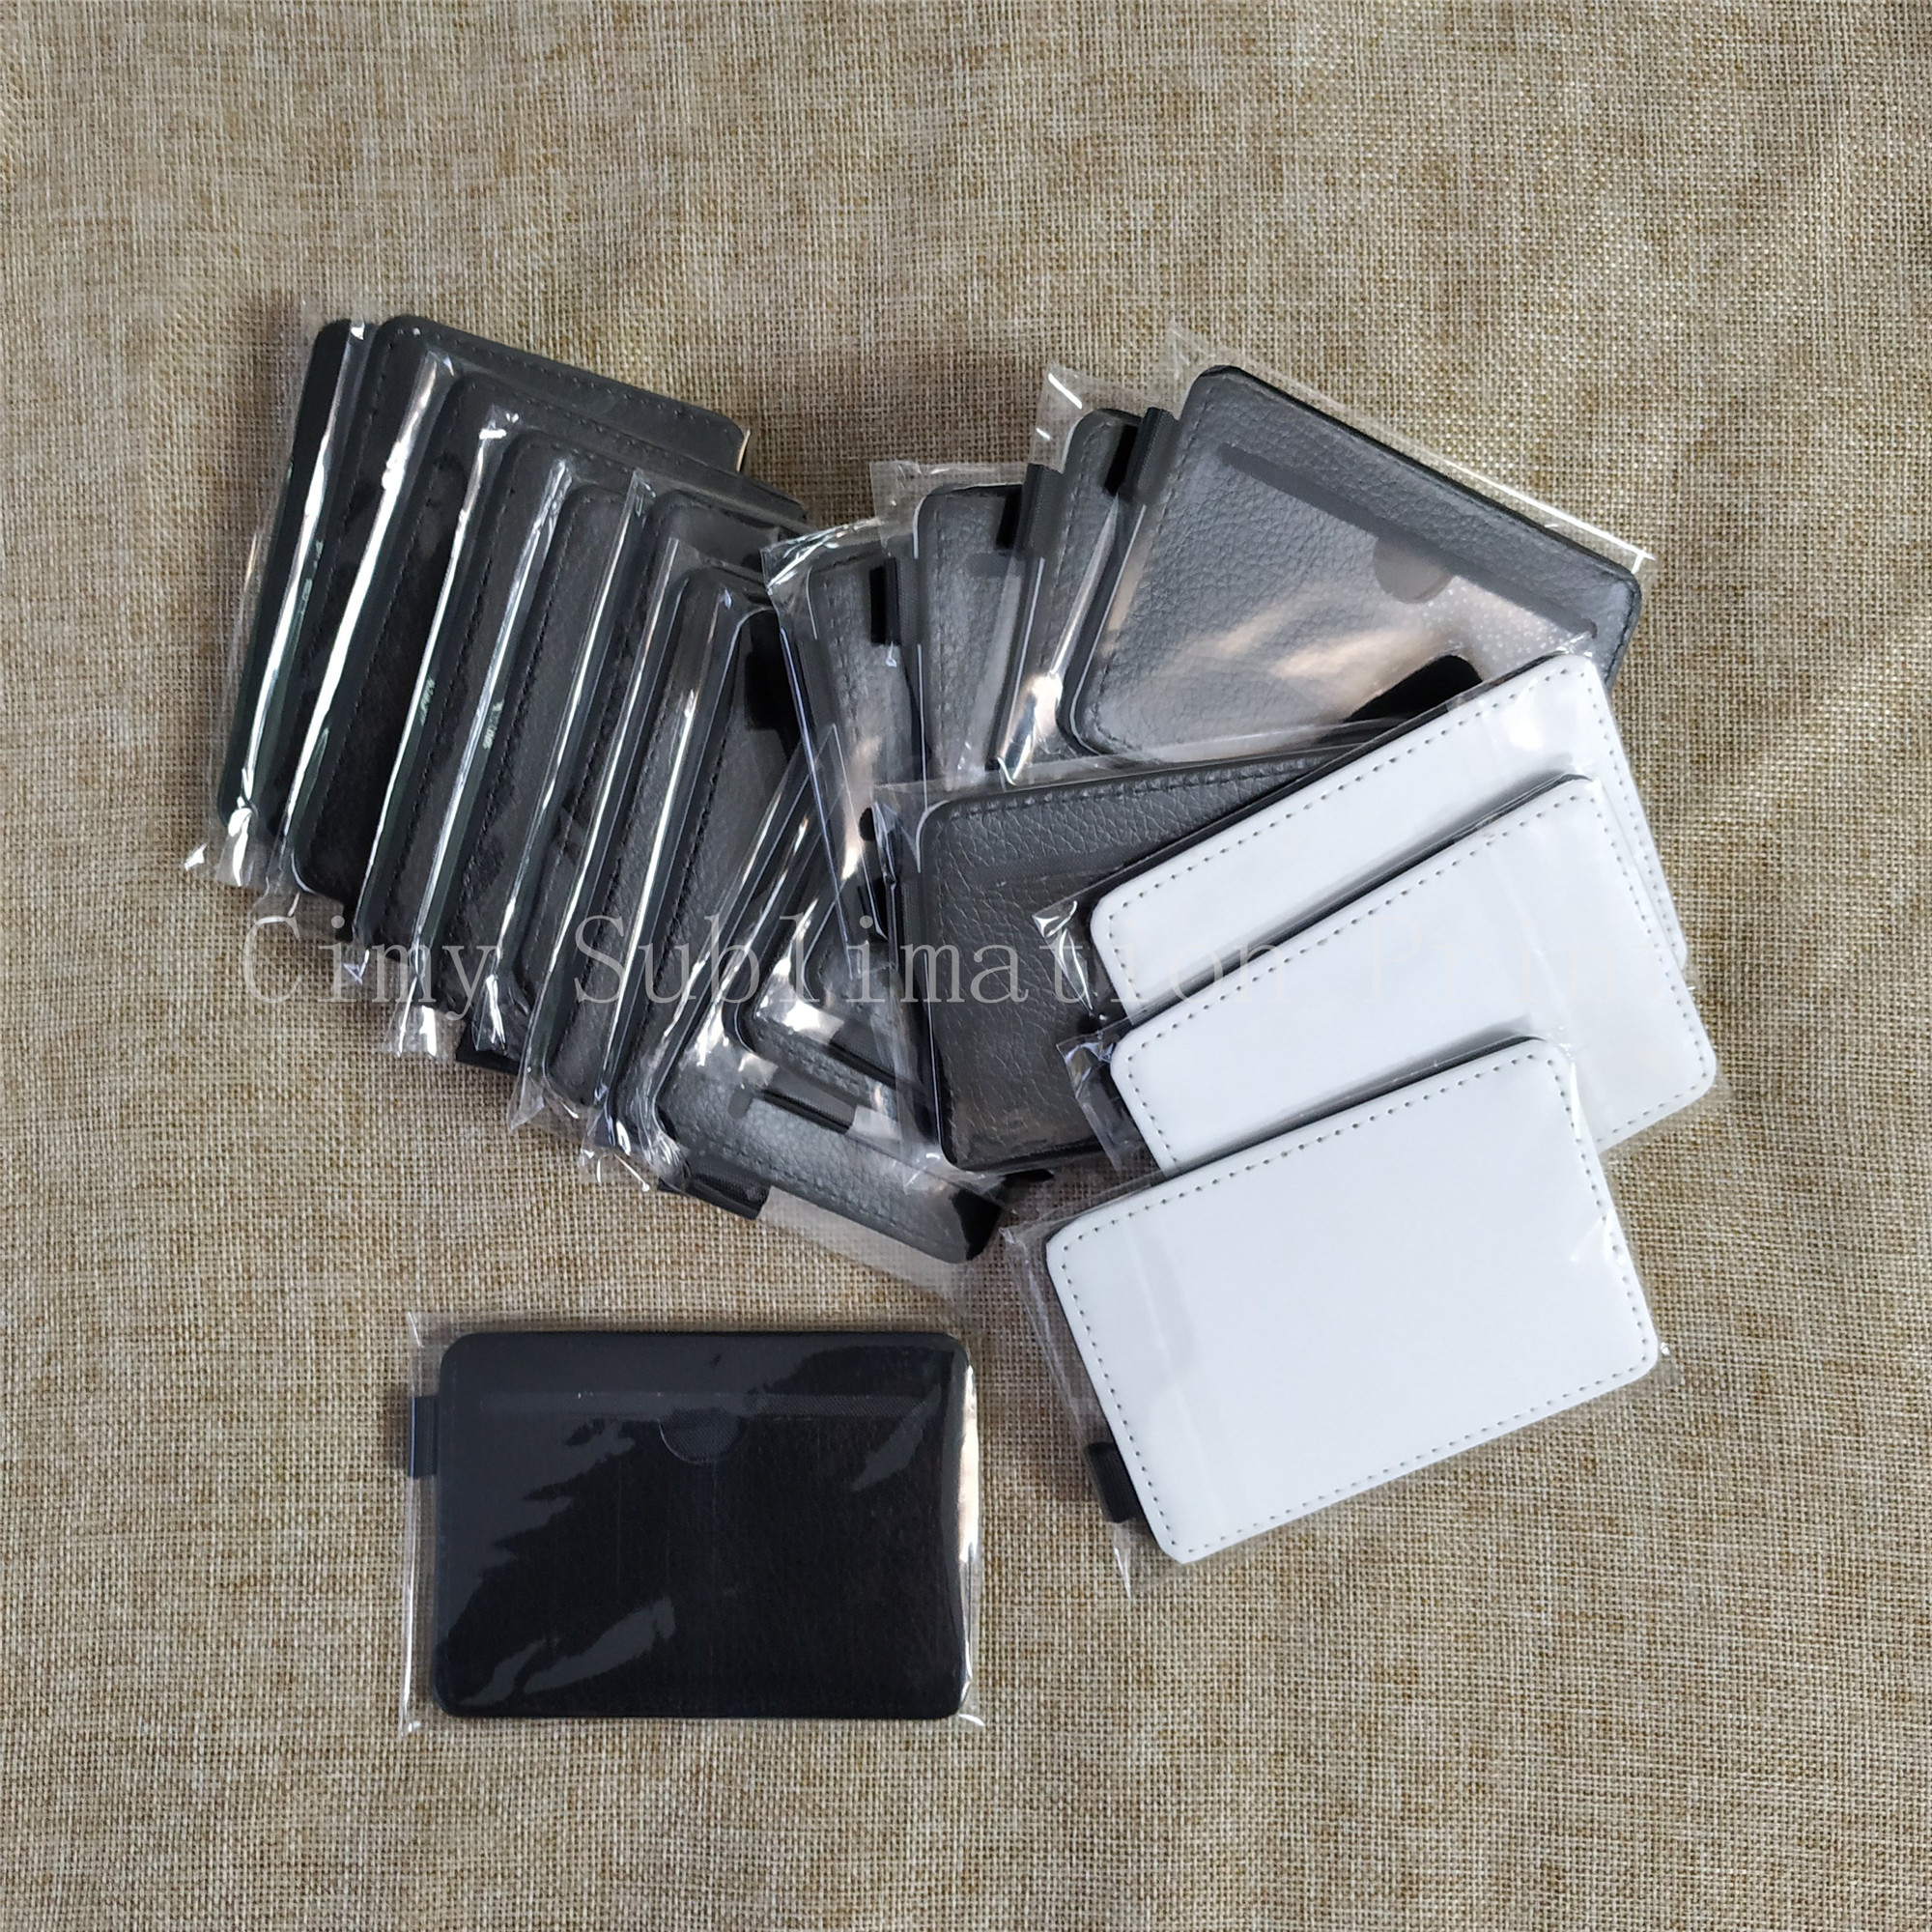 Free Shipping 12pcs/lot Blank Sublimation Leather Card Bag Holder For Heat Transfer Printing Blank Consumables DIY 7x11cm